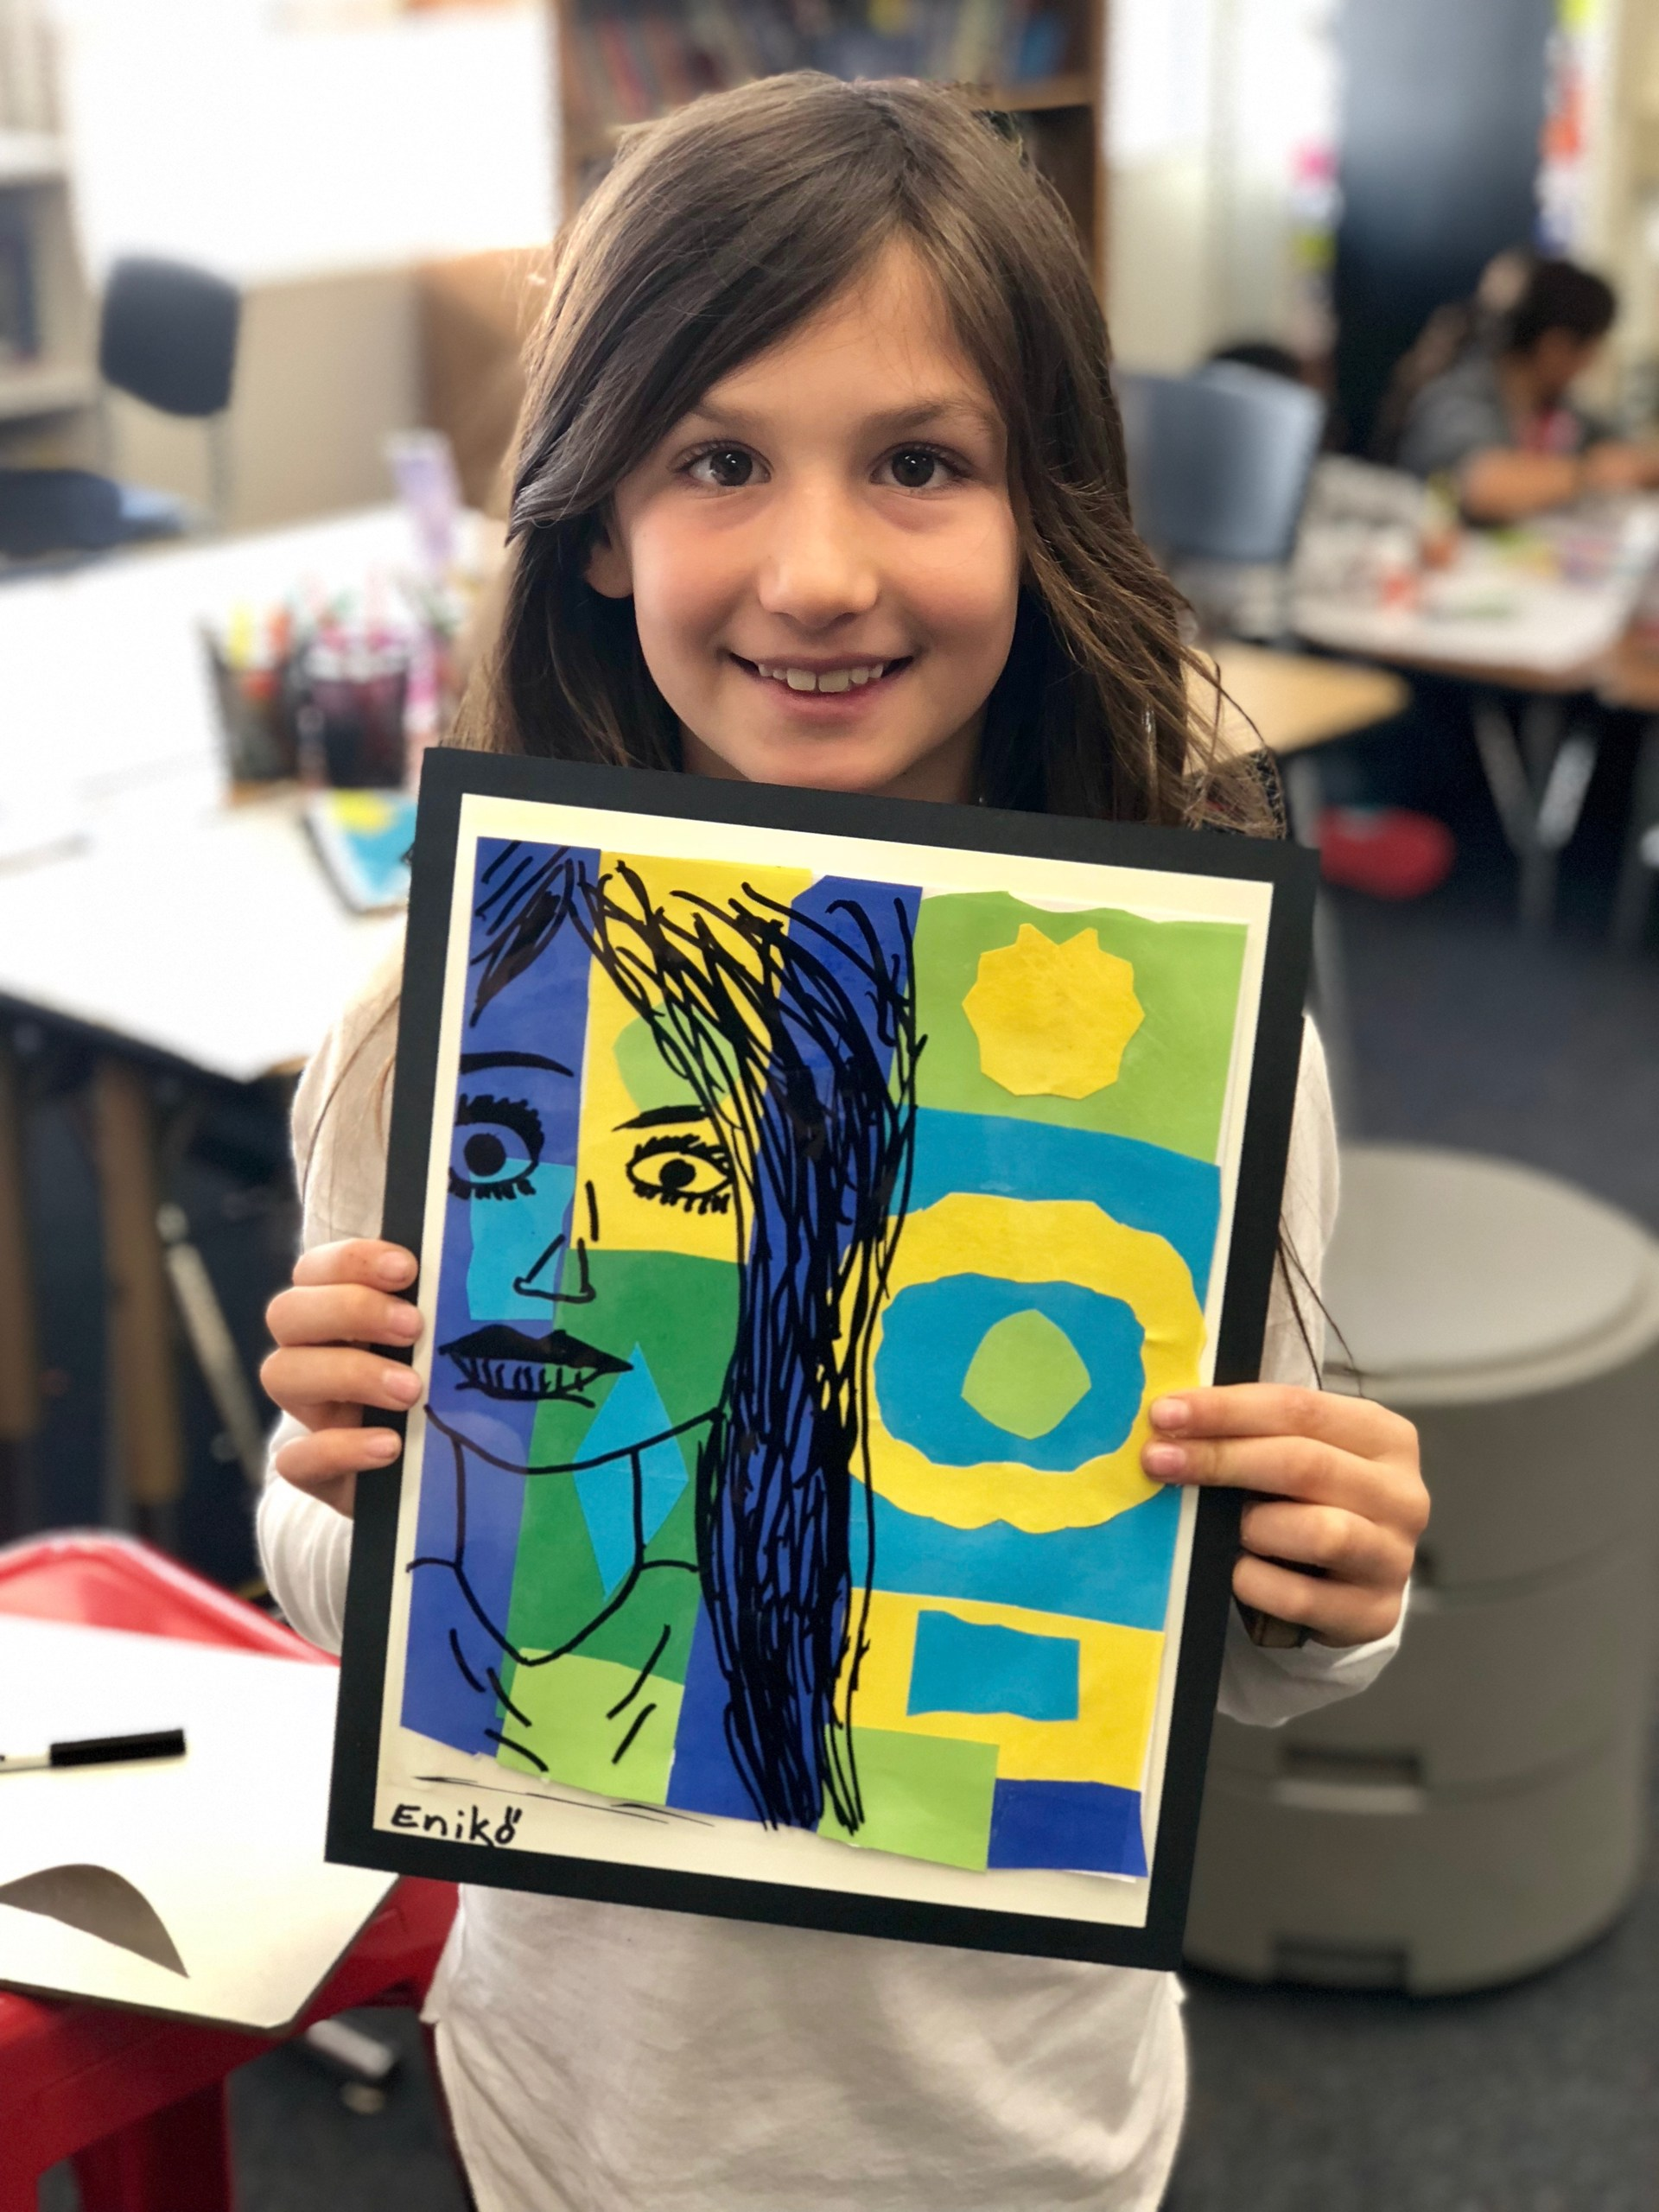 A girl showing her self-portrait with markers on a colorful background.